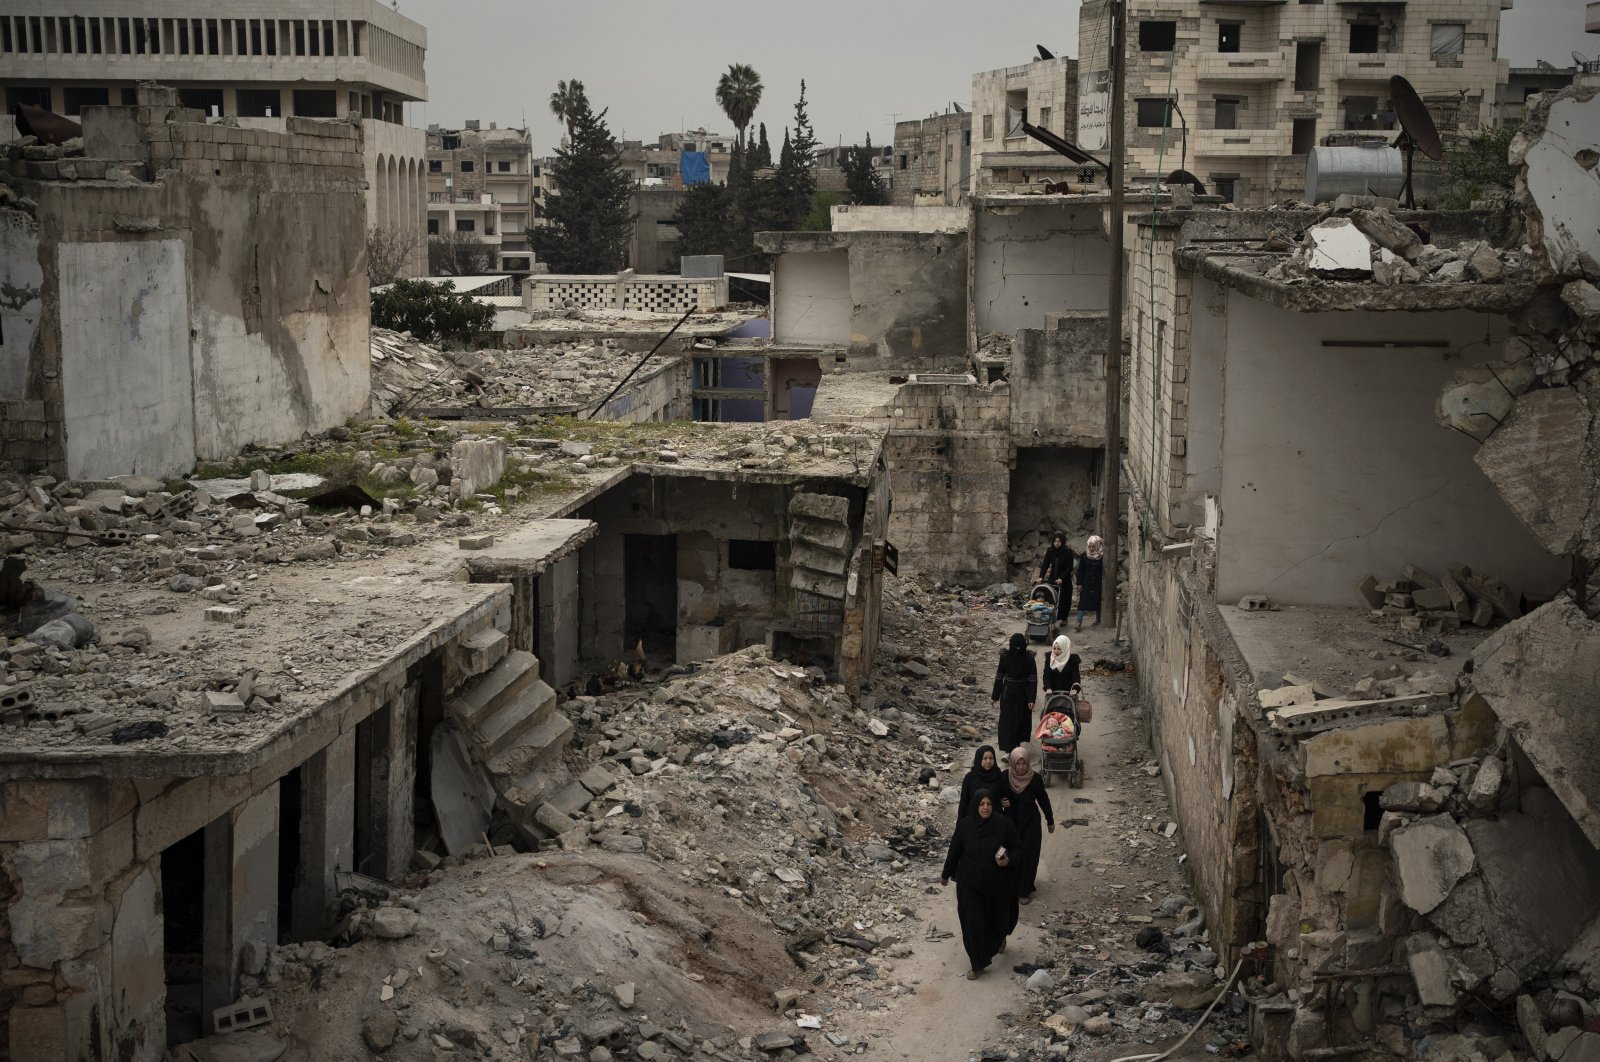 Women walk in a neighborhood heavily damaged by airstrikes in Idlib, Syria, March 12, 2020. (AP)